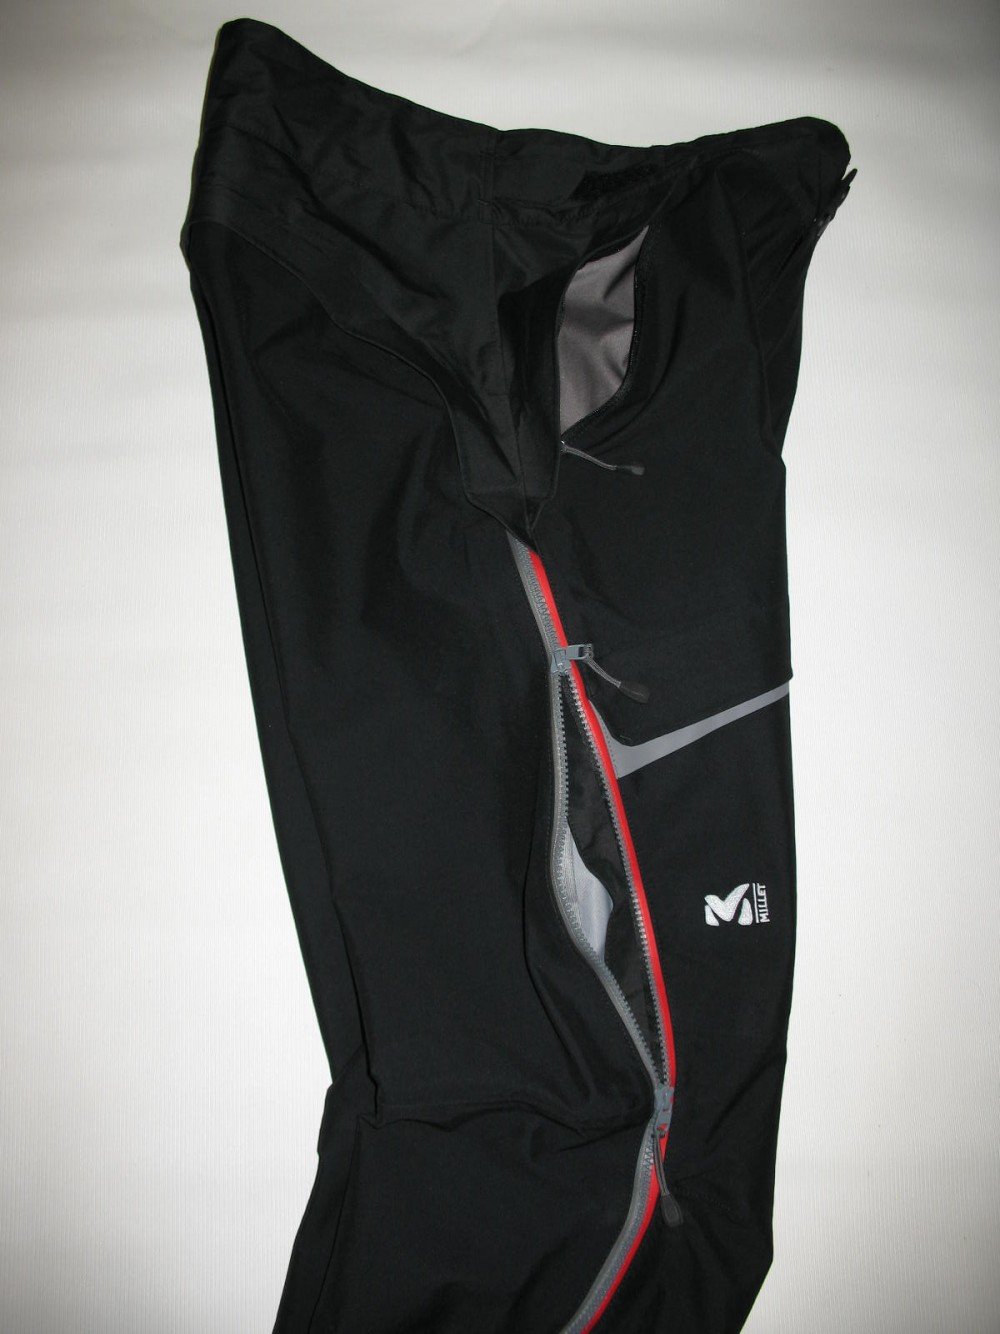 Штаны MILLET grand mixte pants (размер L) - 3